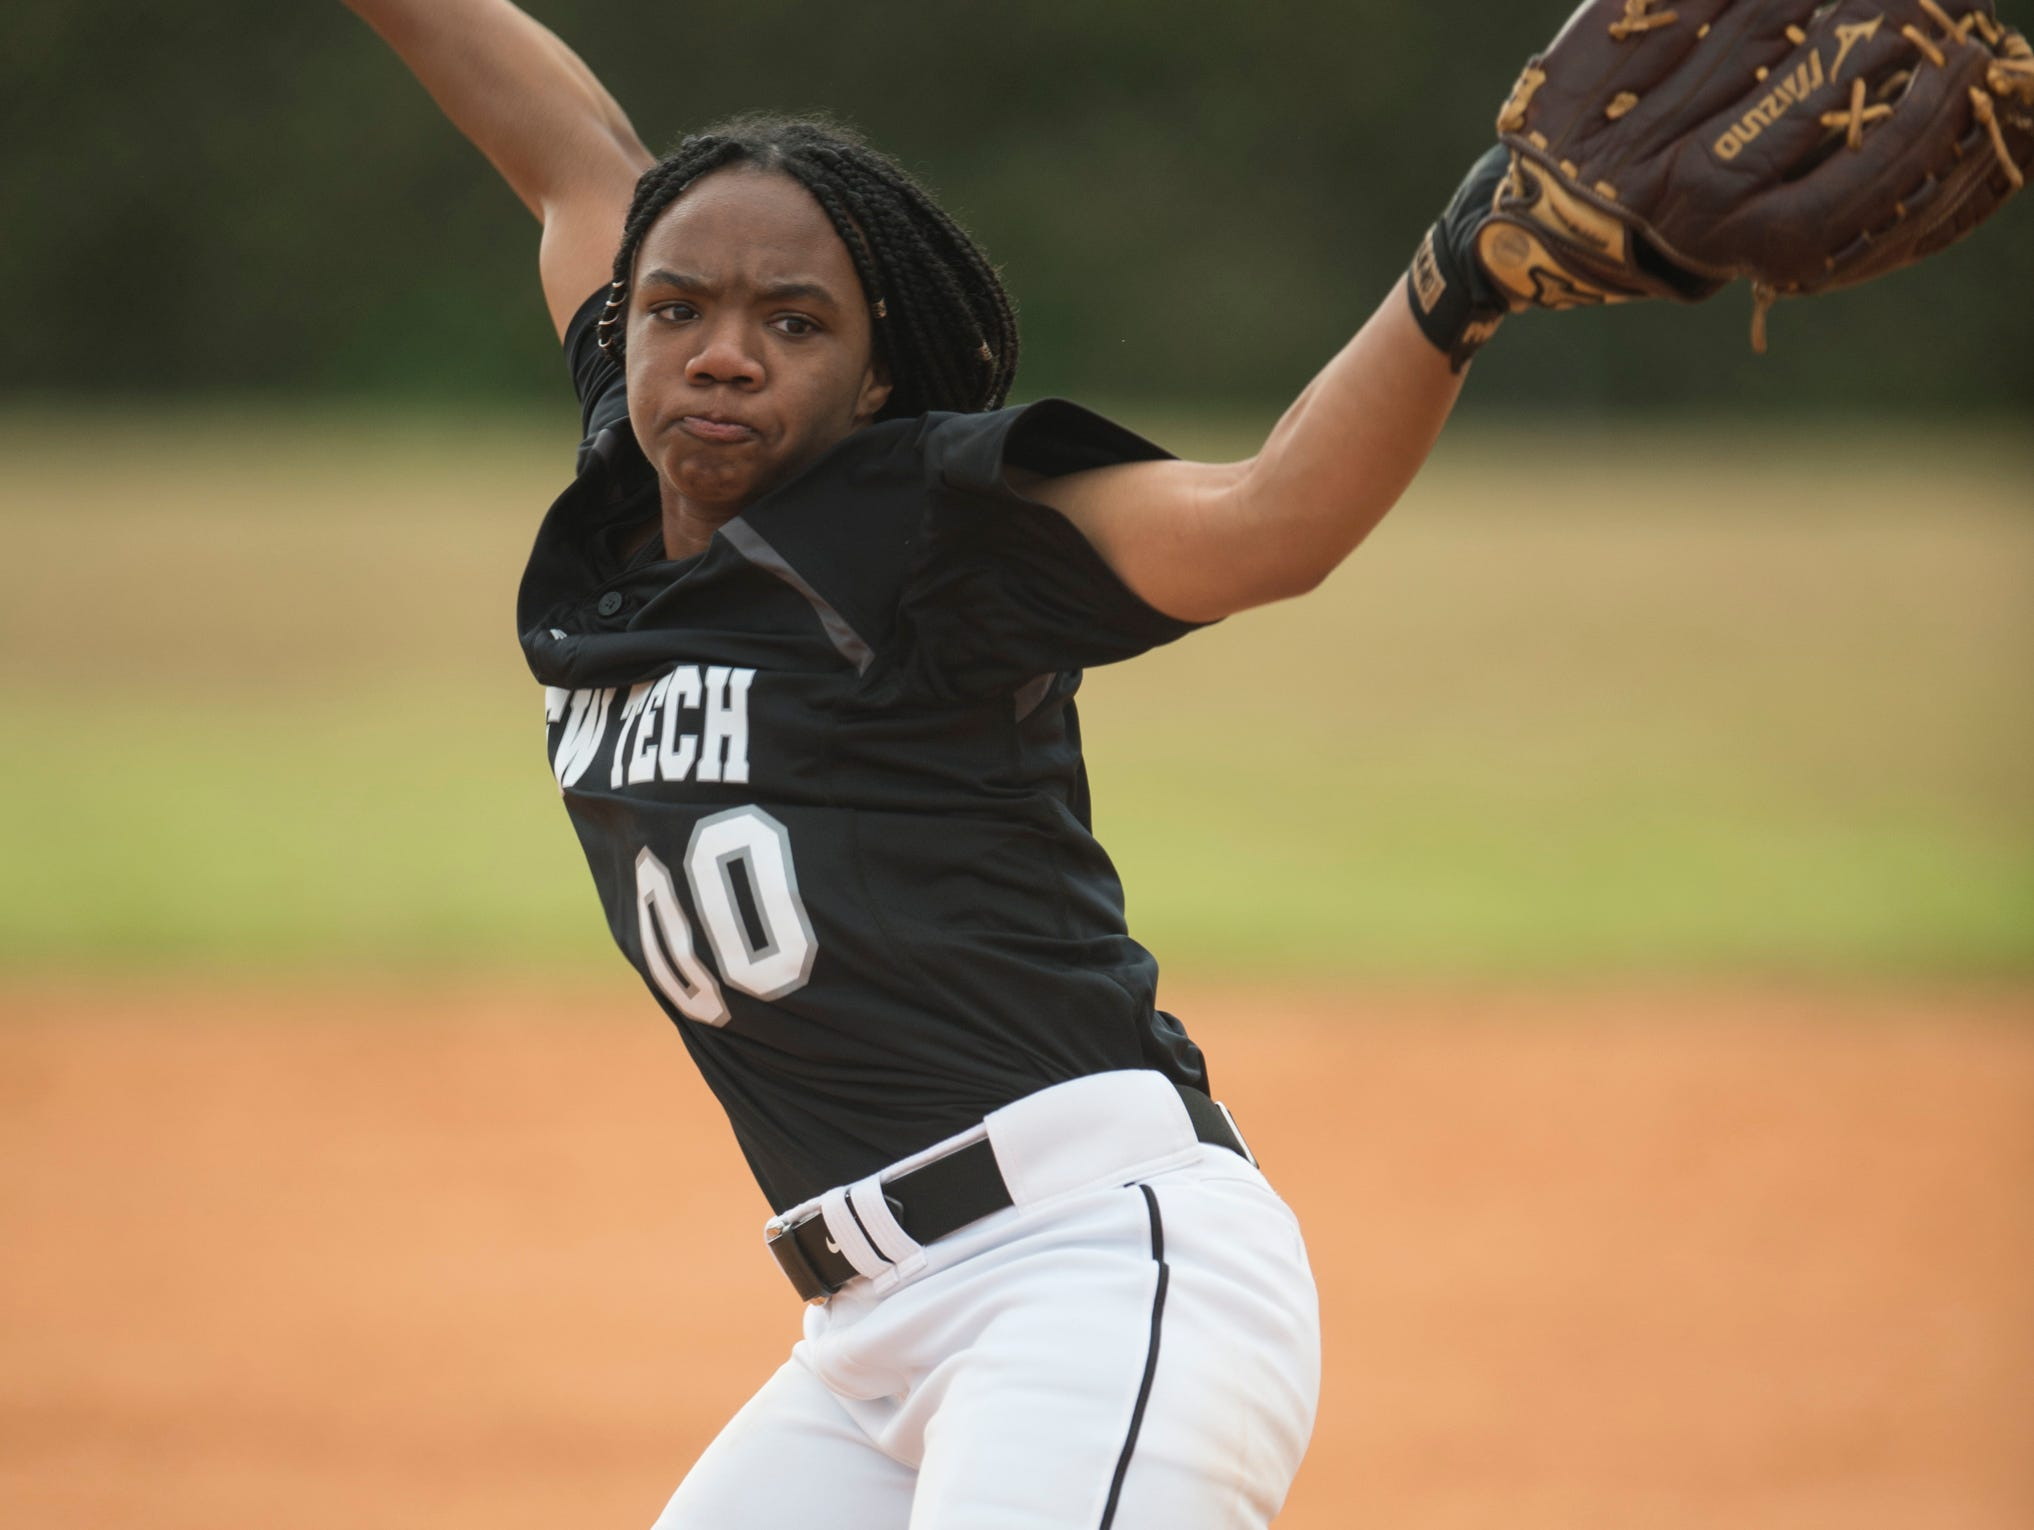 Brew Tech's Tyra Johnson (00) pitches at Thompson Park in Montgomery, Ala., on Thursday, March 14, 2019. Tallassee defeated Brew Tech 7-0.